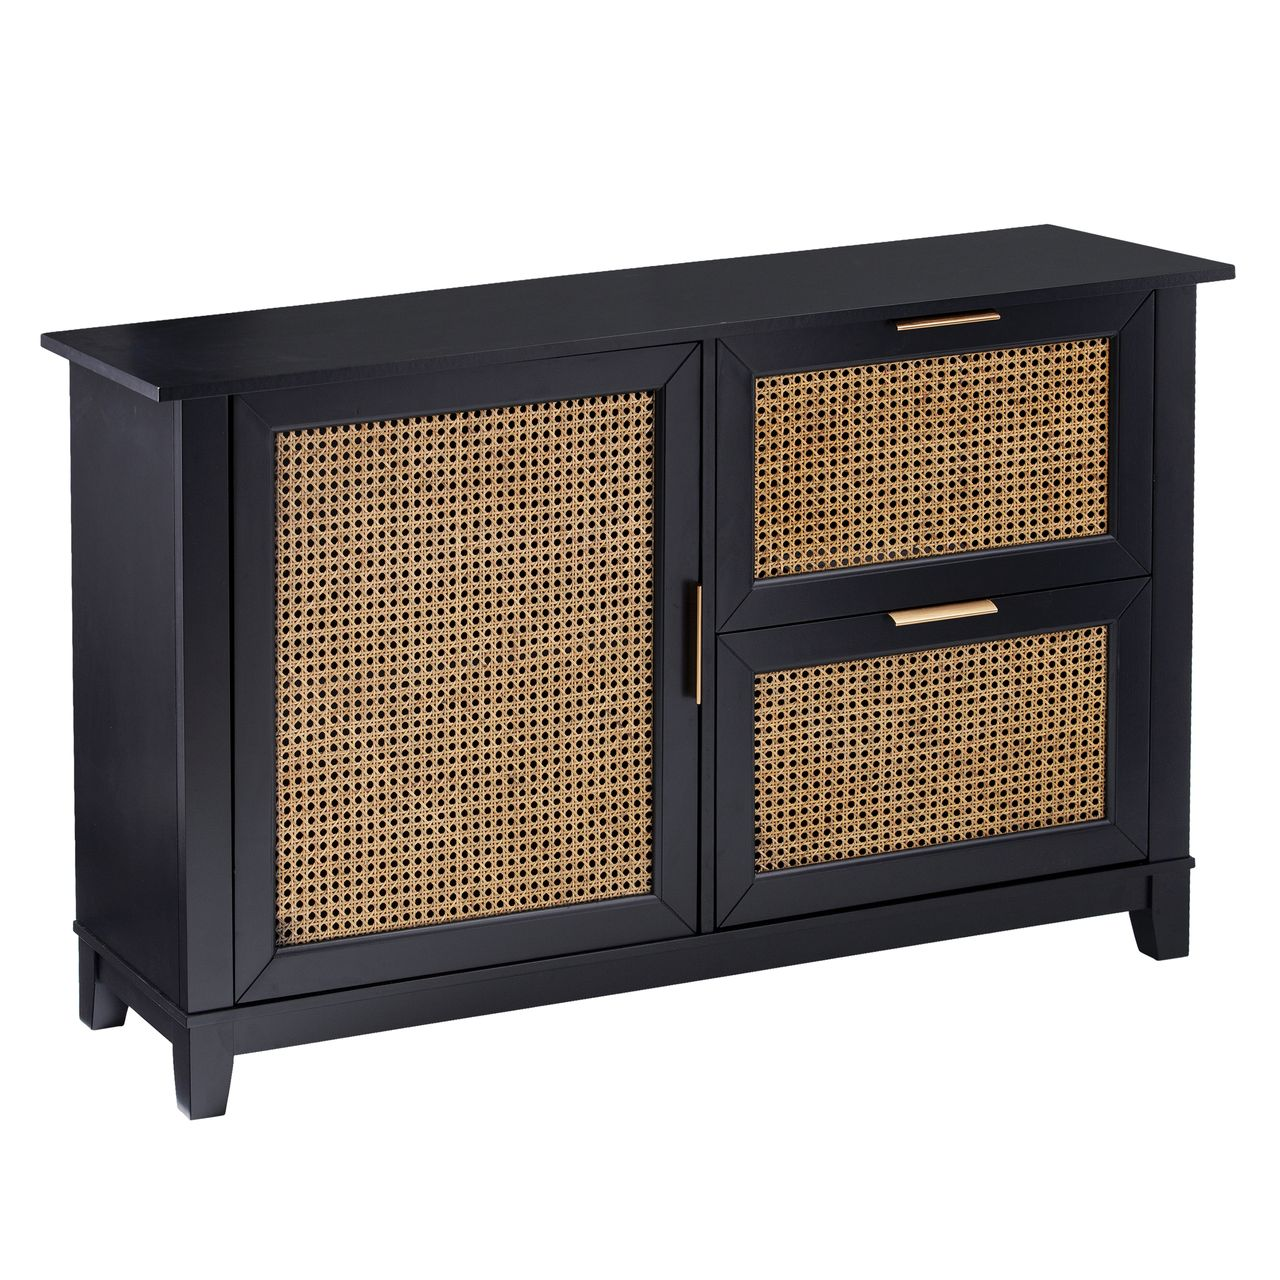 Holly & Martin Chekshire Anywhere Storage Cabinet in Black / Natural